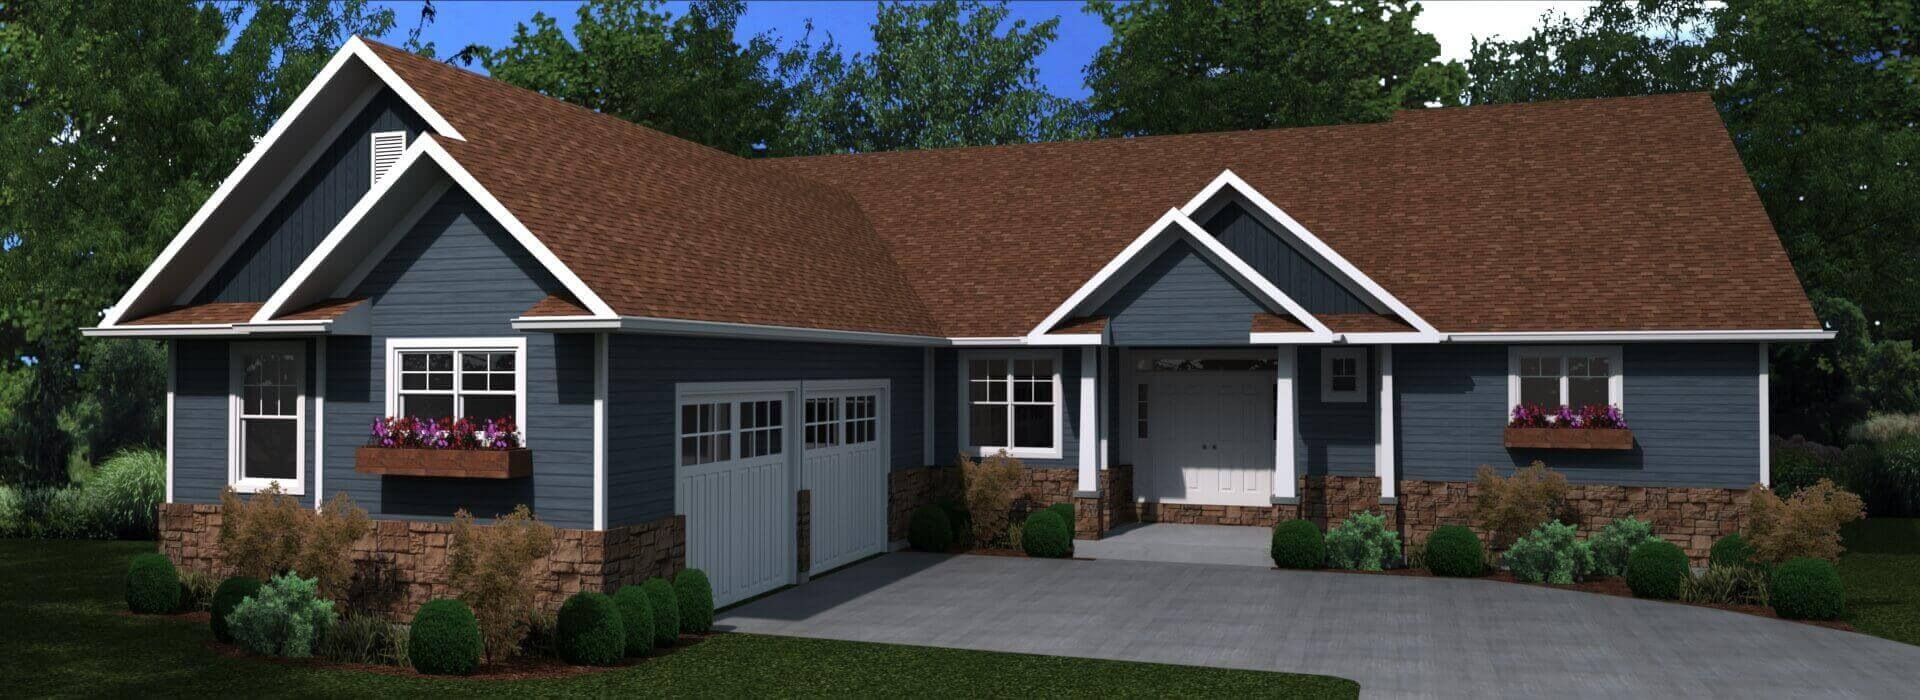 2505 sq.ft. timber mart house 3 bed 2.5 bath exterior render